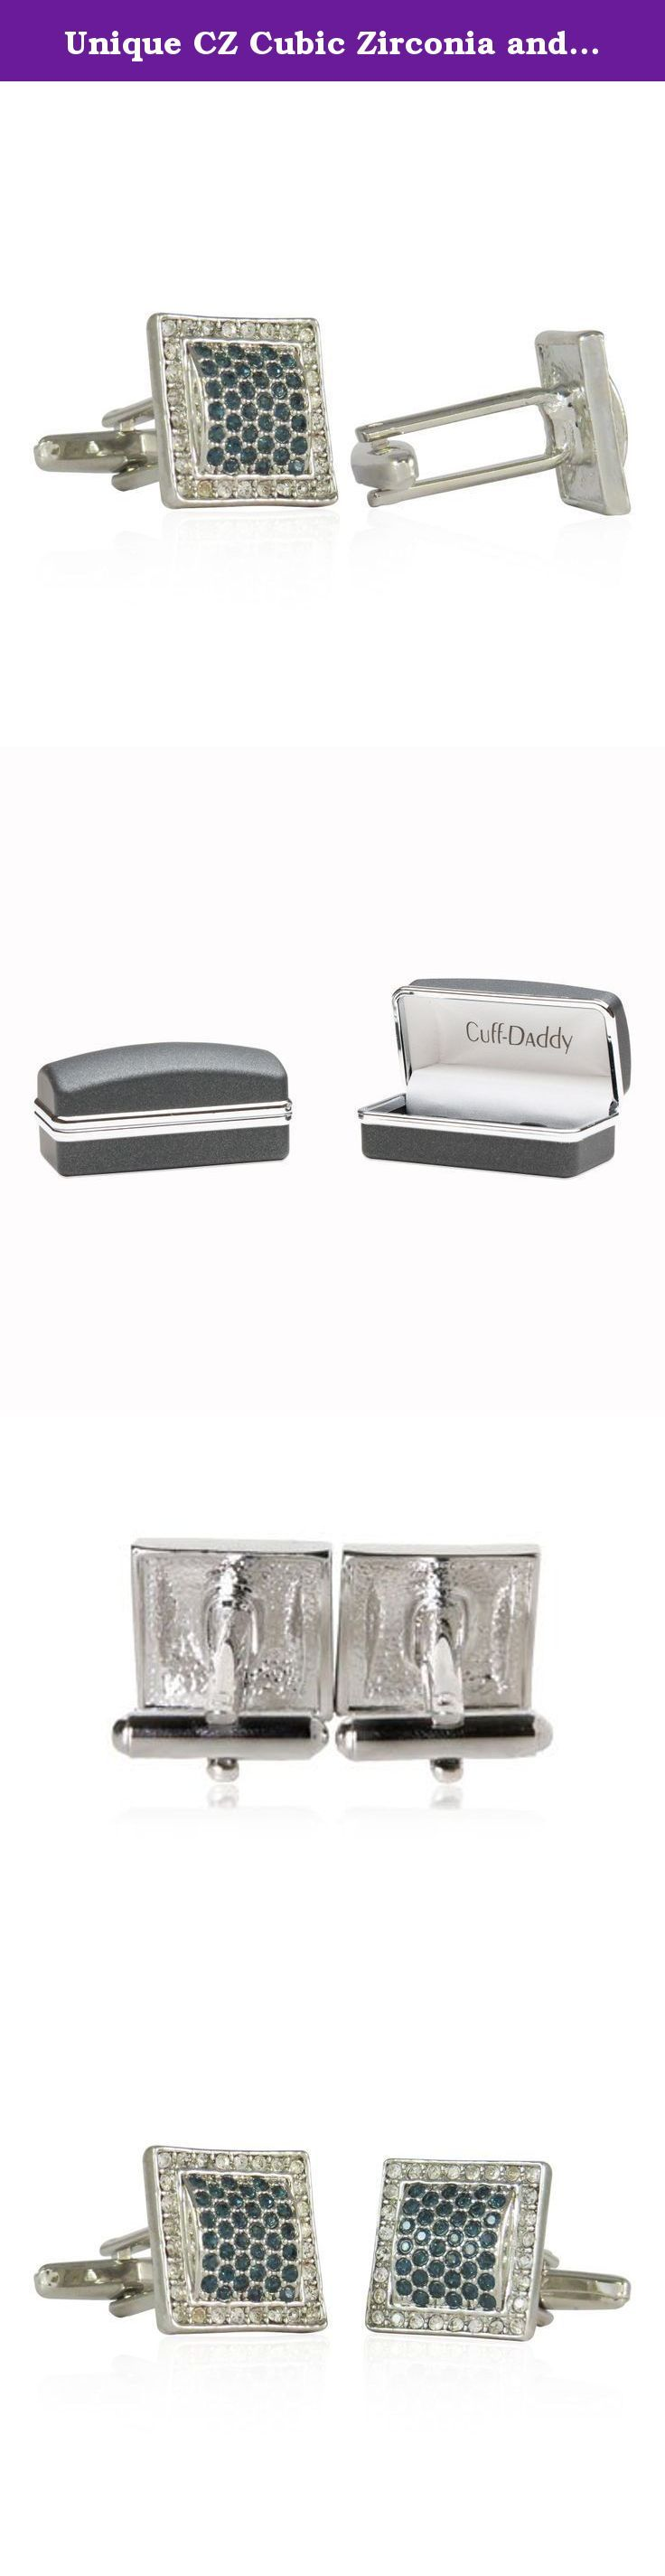 Unique CZ Cubic Zirconia and Faux Sapphire Silver Cufflinks by Cuff-Daddy. Cubic zirconia's surround faux sapphires in this classic set of silver-tone, silver cufflinks. Superb craftsman ship includes hand placed stones on each pair. The designers worked diligently to reduce their weight, making them among the lightest we have to offer. PLEASE NOTE: the faux sapphires are actually a little darker than pictured. Our photographer was challenged capturing the true color on film. These…